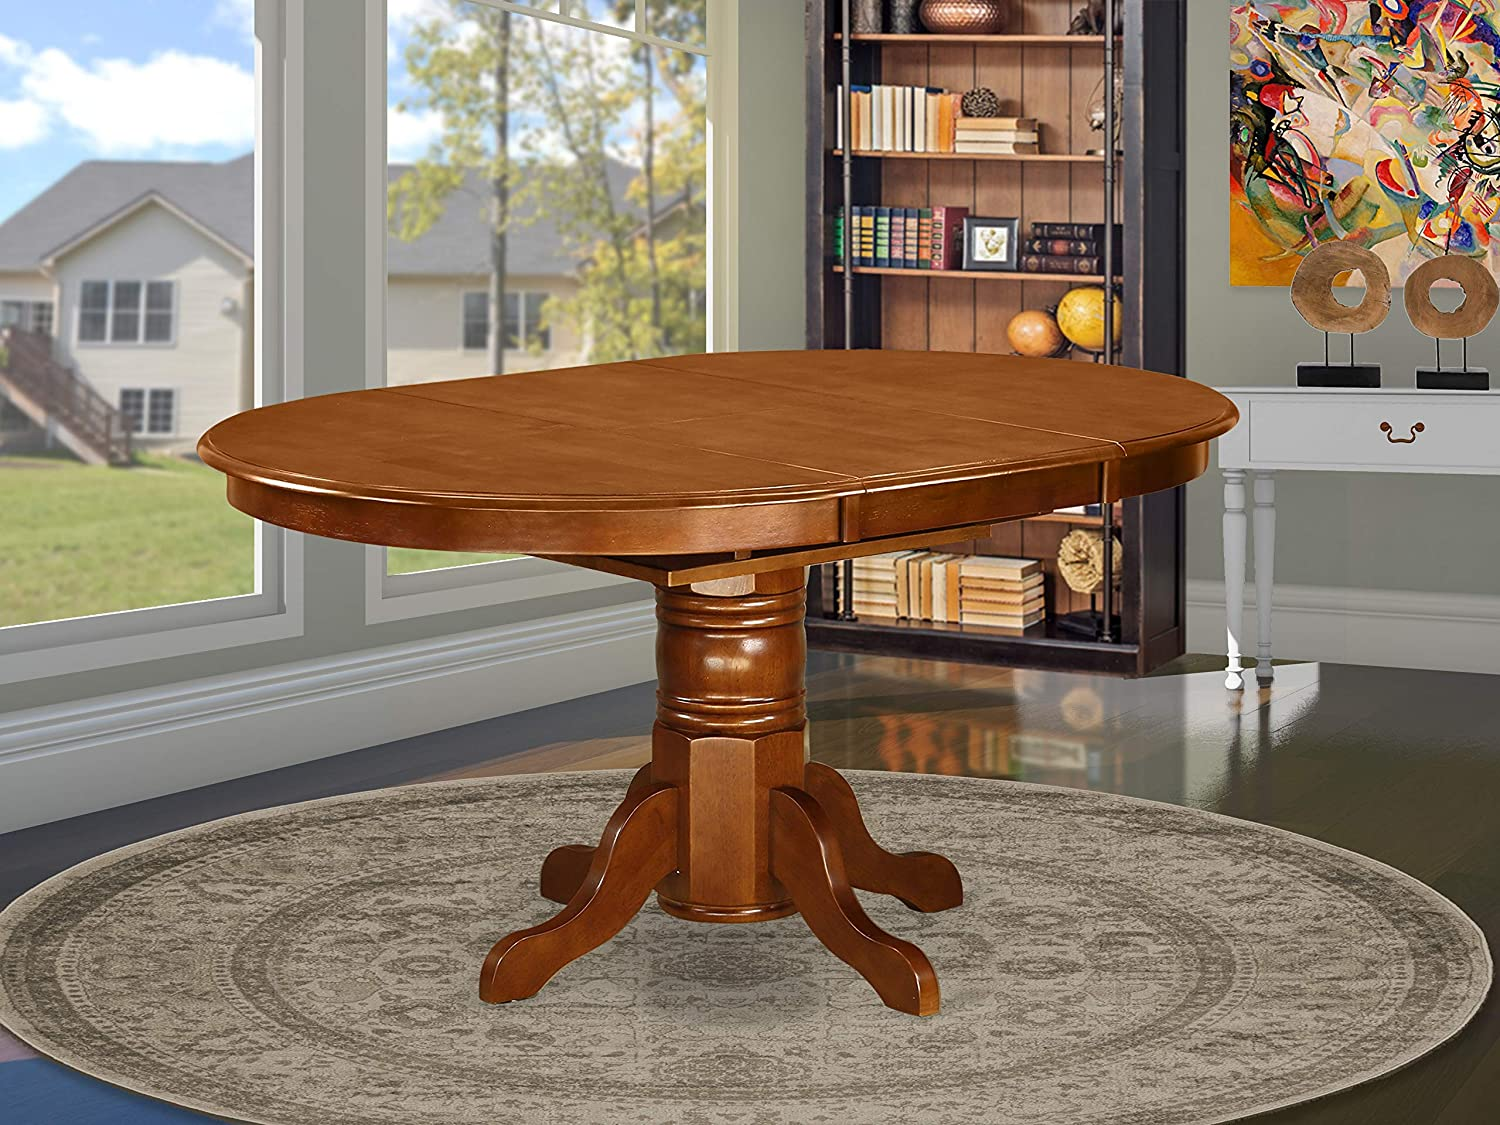 East West Furniture AVT-SBR-TP Oval 42/60-Inch Table with 18-Inch Butterfly Leaf, Medium, Saddle Brown Finish